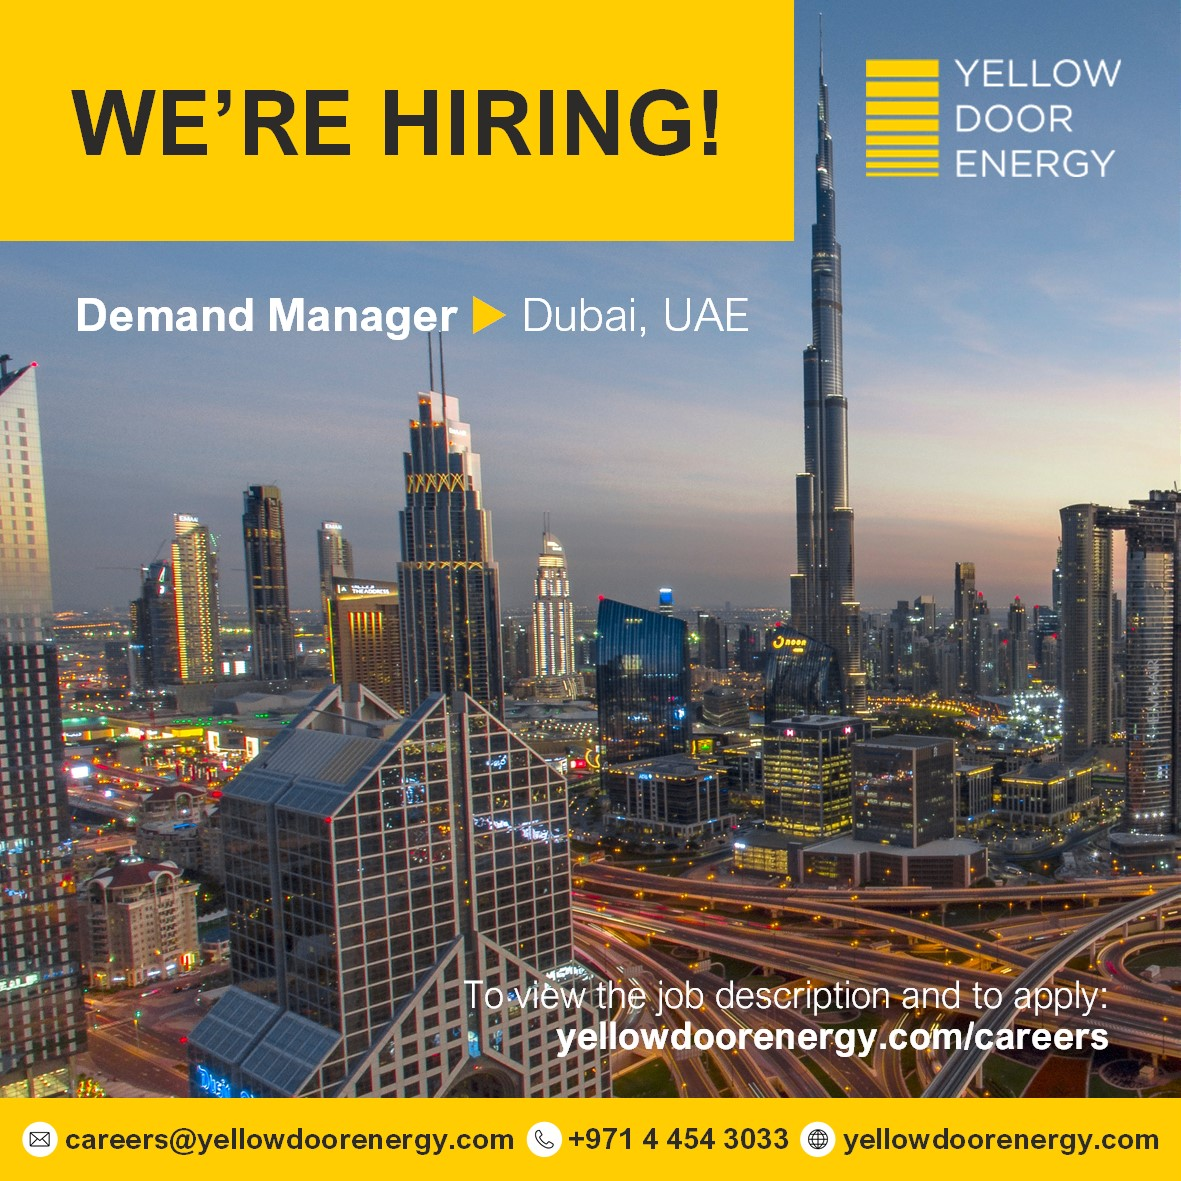 WE'RE #HIRING:  Demand Manager in #Dubai, #UAE   If you're passionate about bringing #energyefficiency solutions to businesses, then this could be the role for you!  http://bit.ly/YDECareers  #energyjobs #greenjobs #demandmanagement #sdgs #engineeringjobs #energyengineerspic.twitter.com/OMD9HydBZS